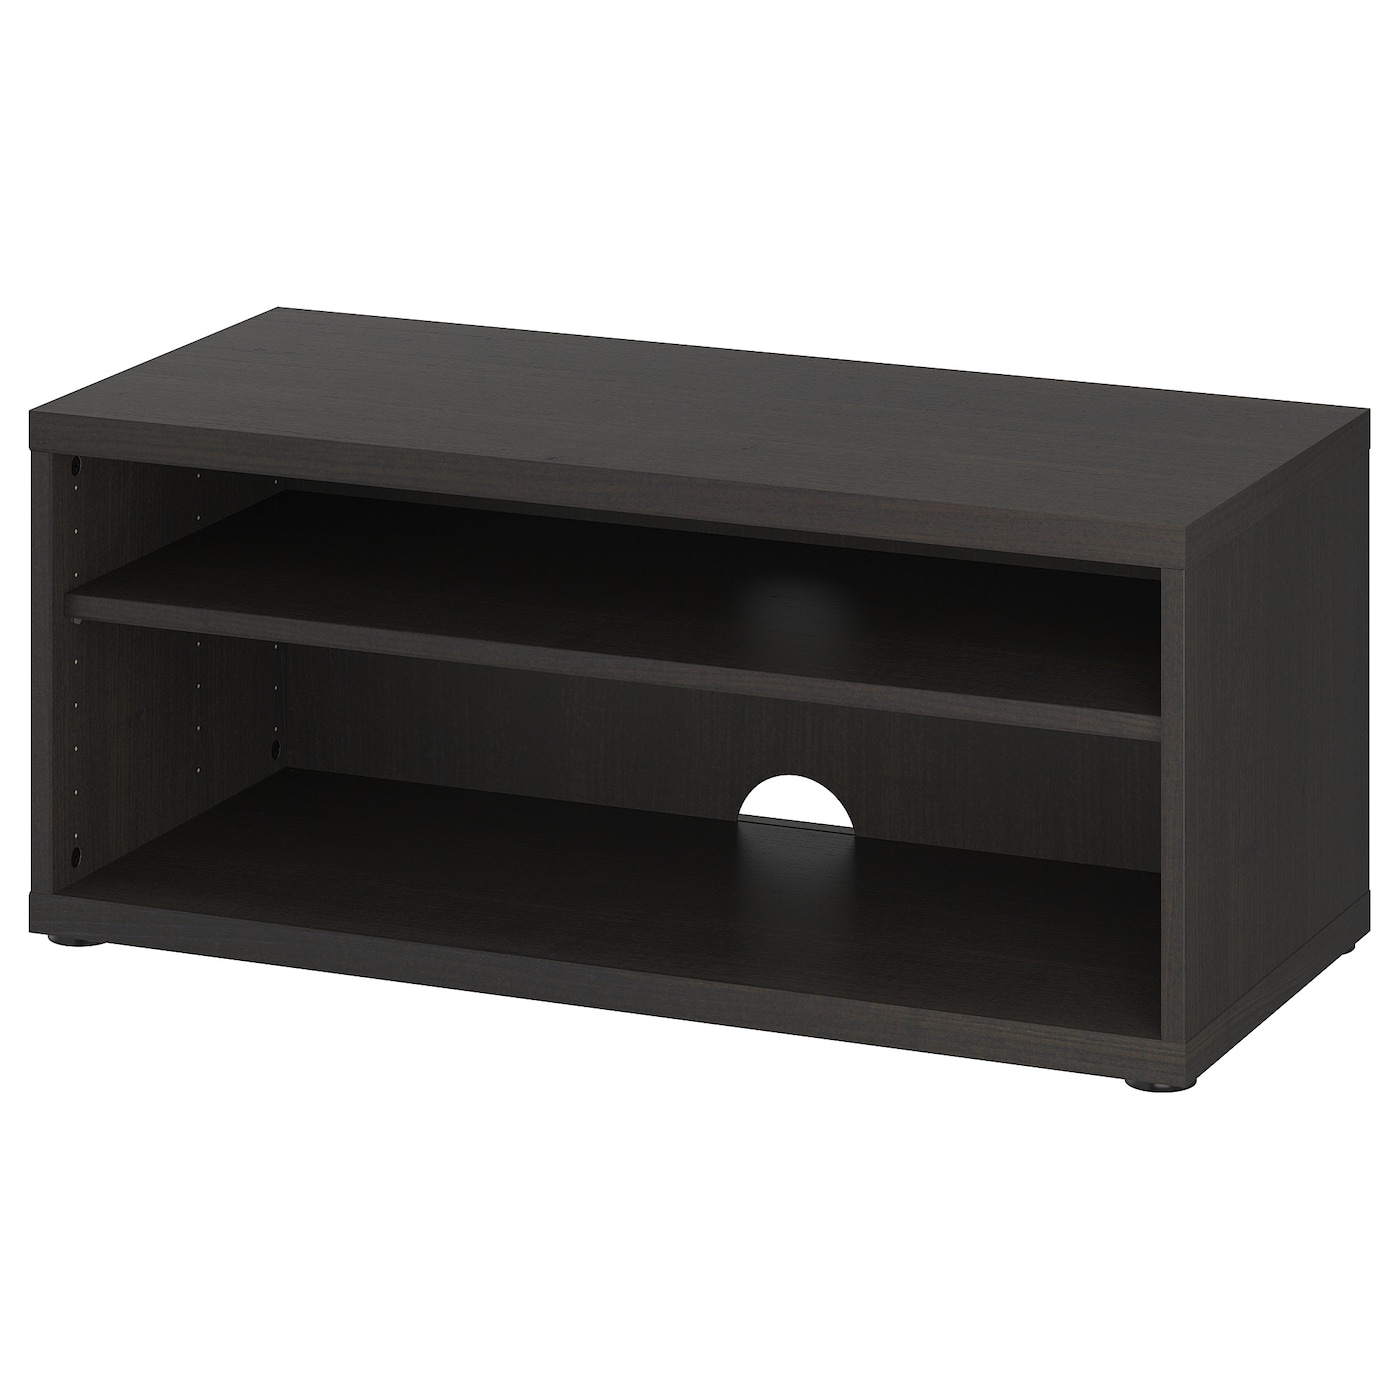 mosjÖ tv bench black-brown 90 x 40 x 38 cm - ikea